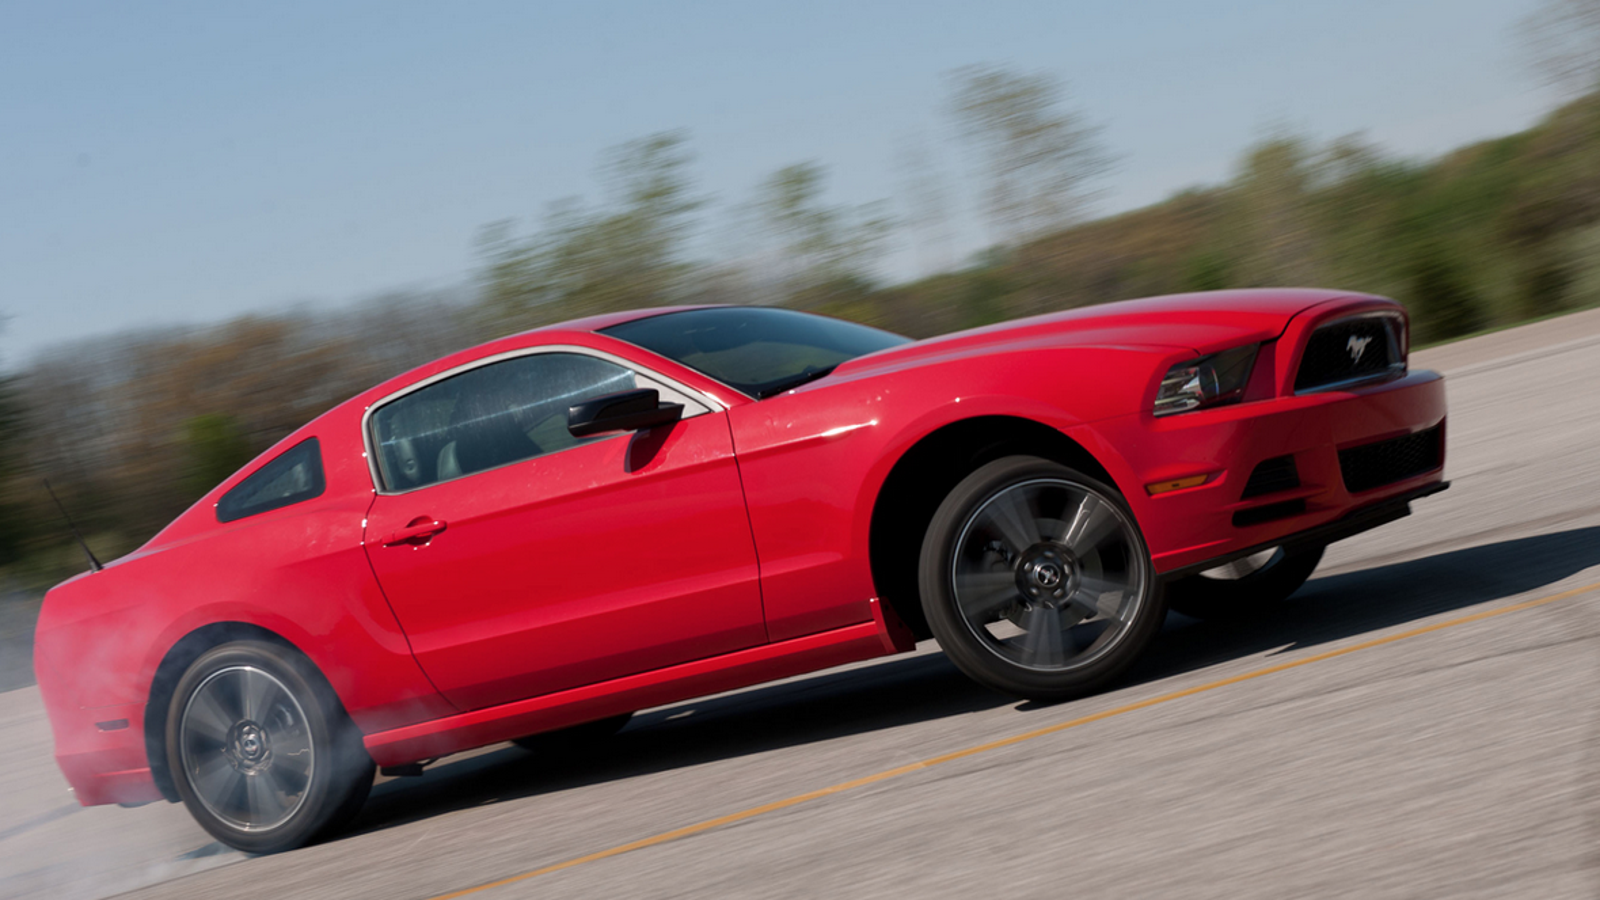 Fast Cars Under 30K >> These are R&T's 12 best cars under $30k. Now tell us how wrong we are.